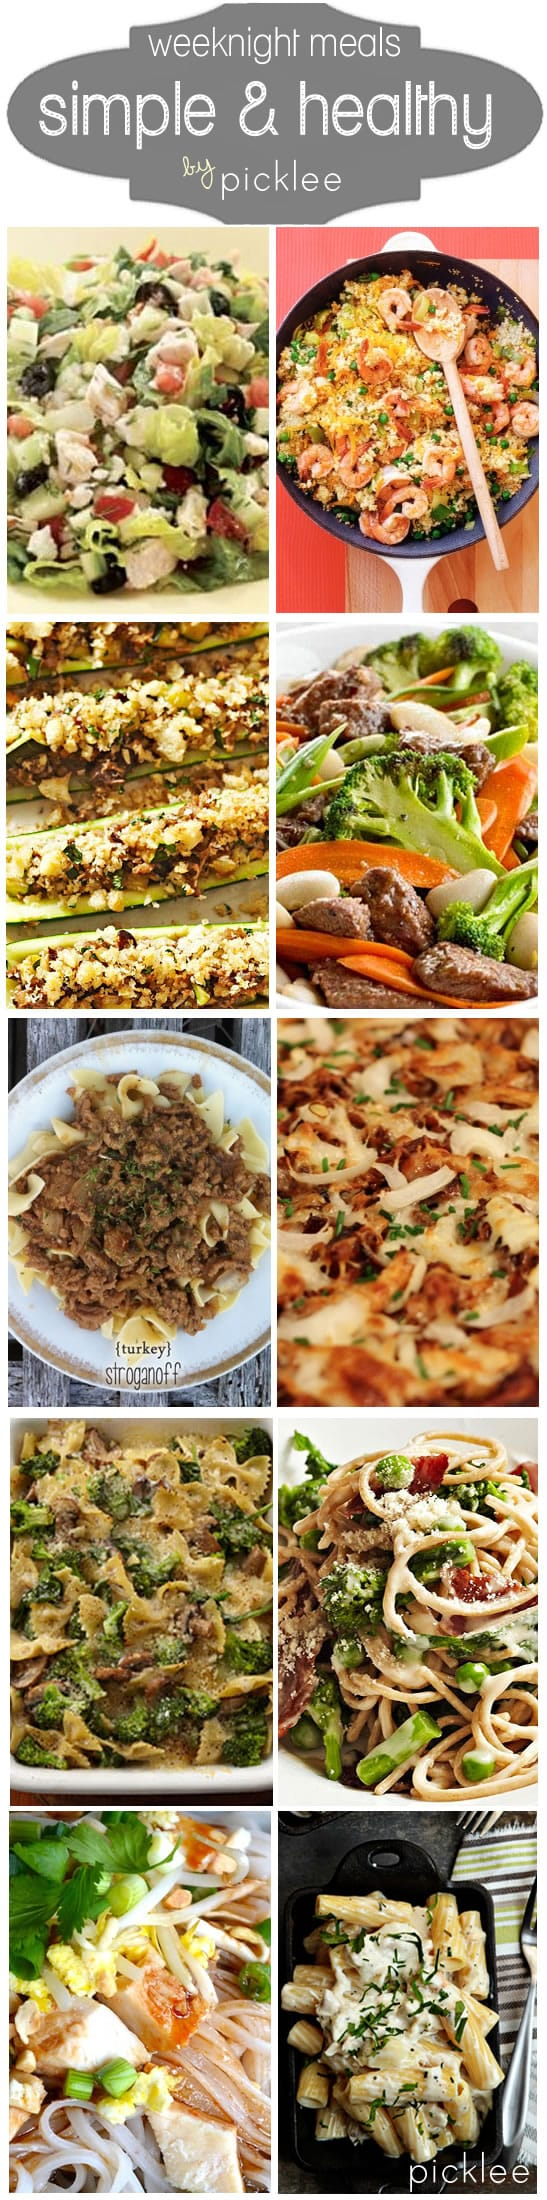 healthy-simple-family-dinners